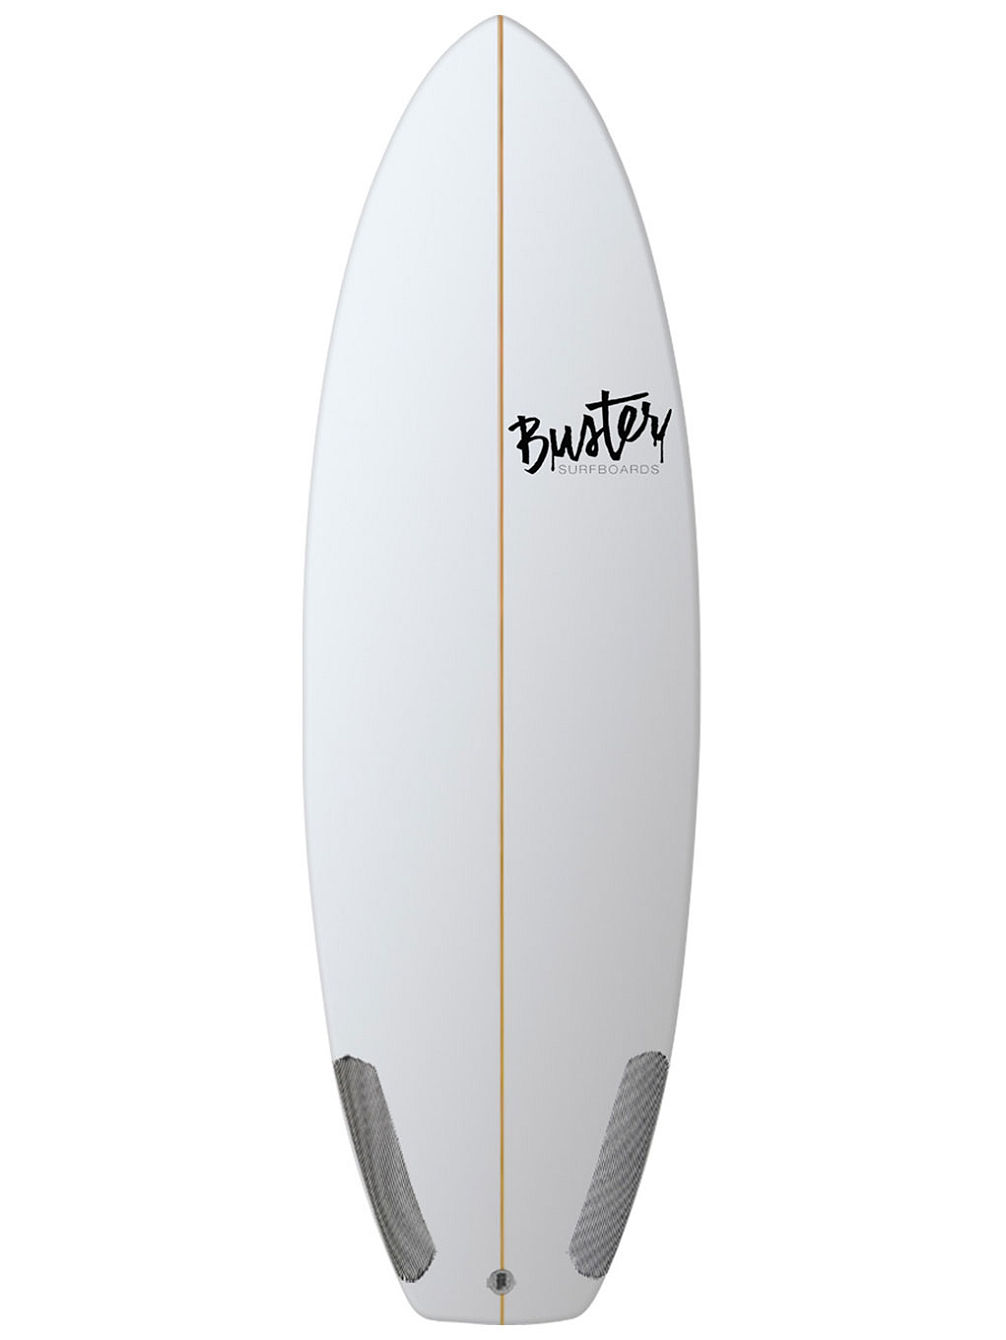 Riversurfboard 19''1/2 2''1/8 (T-Type) 5